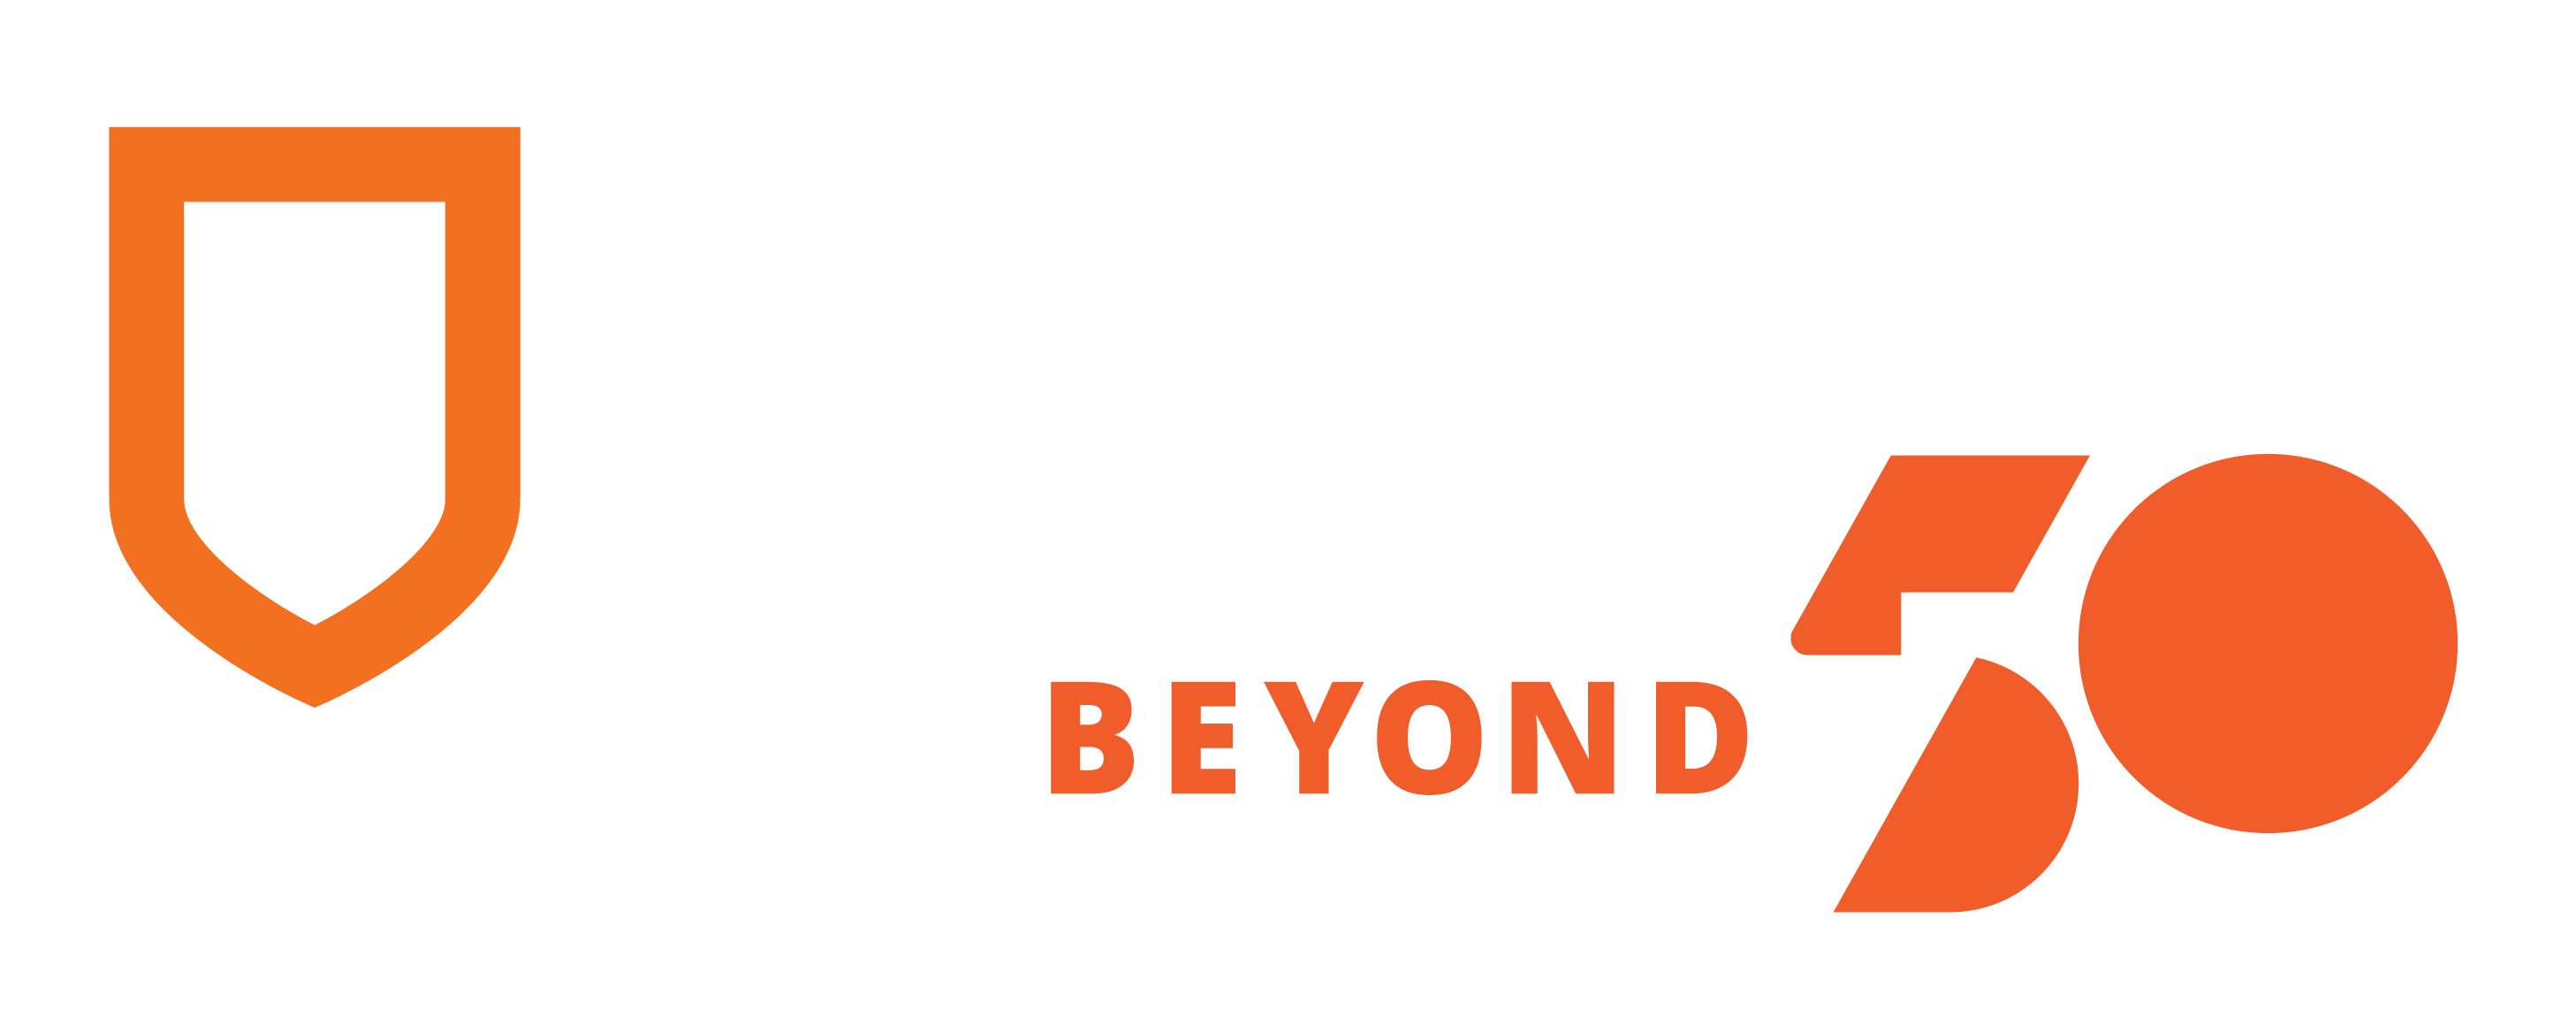 Athabascau University Beyond 50 Logo